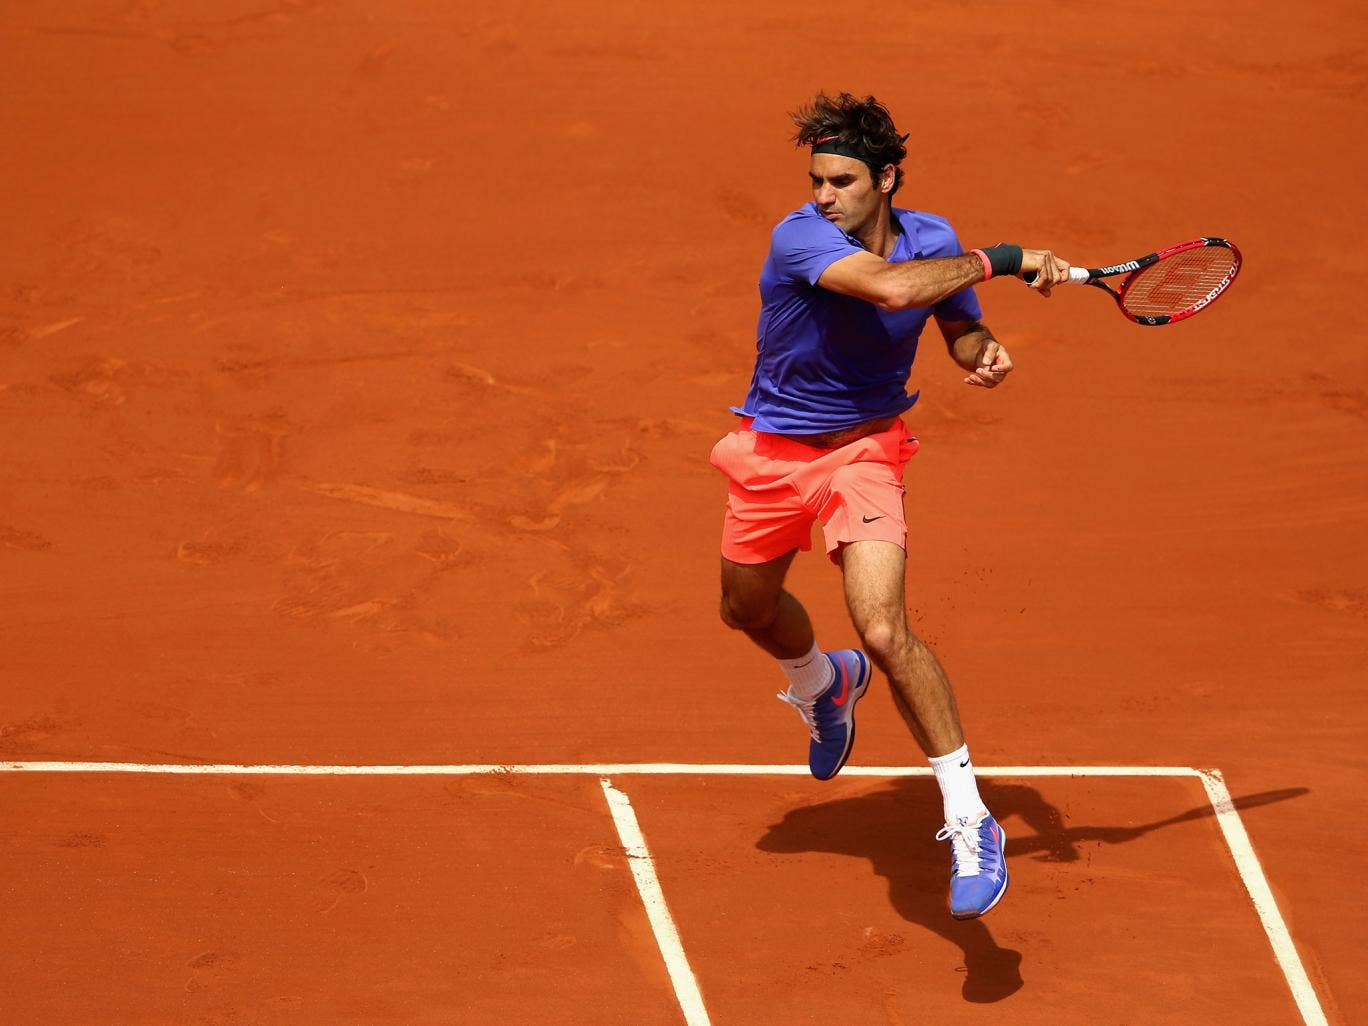 roger federer in action at the french open. Black Bedroom Furniture Sets. Home Design Ideas